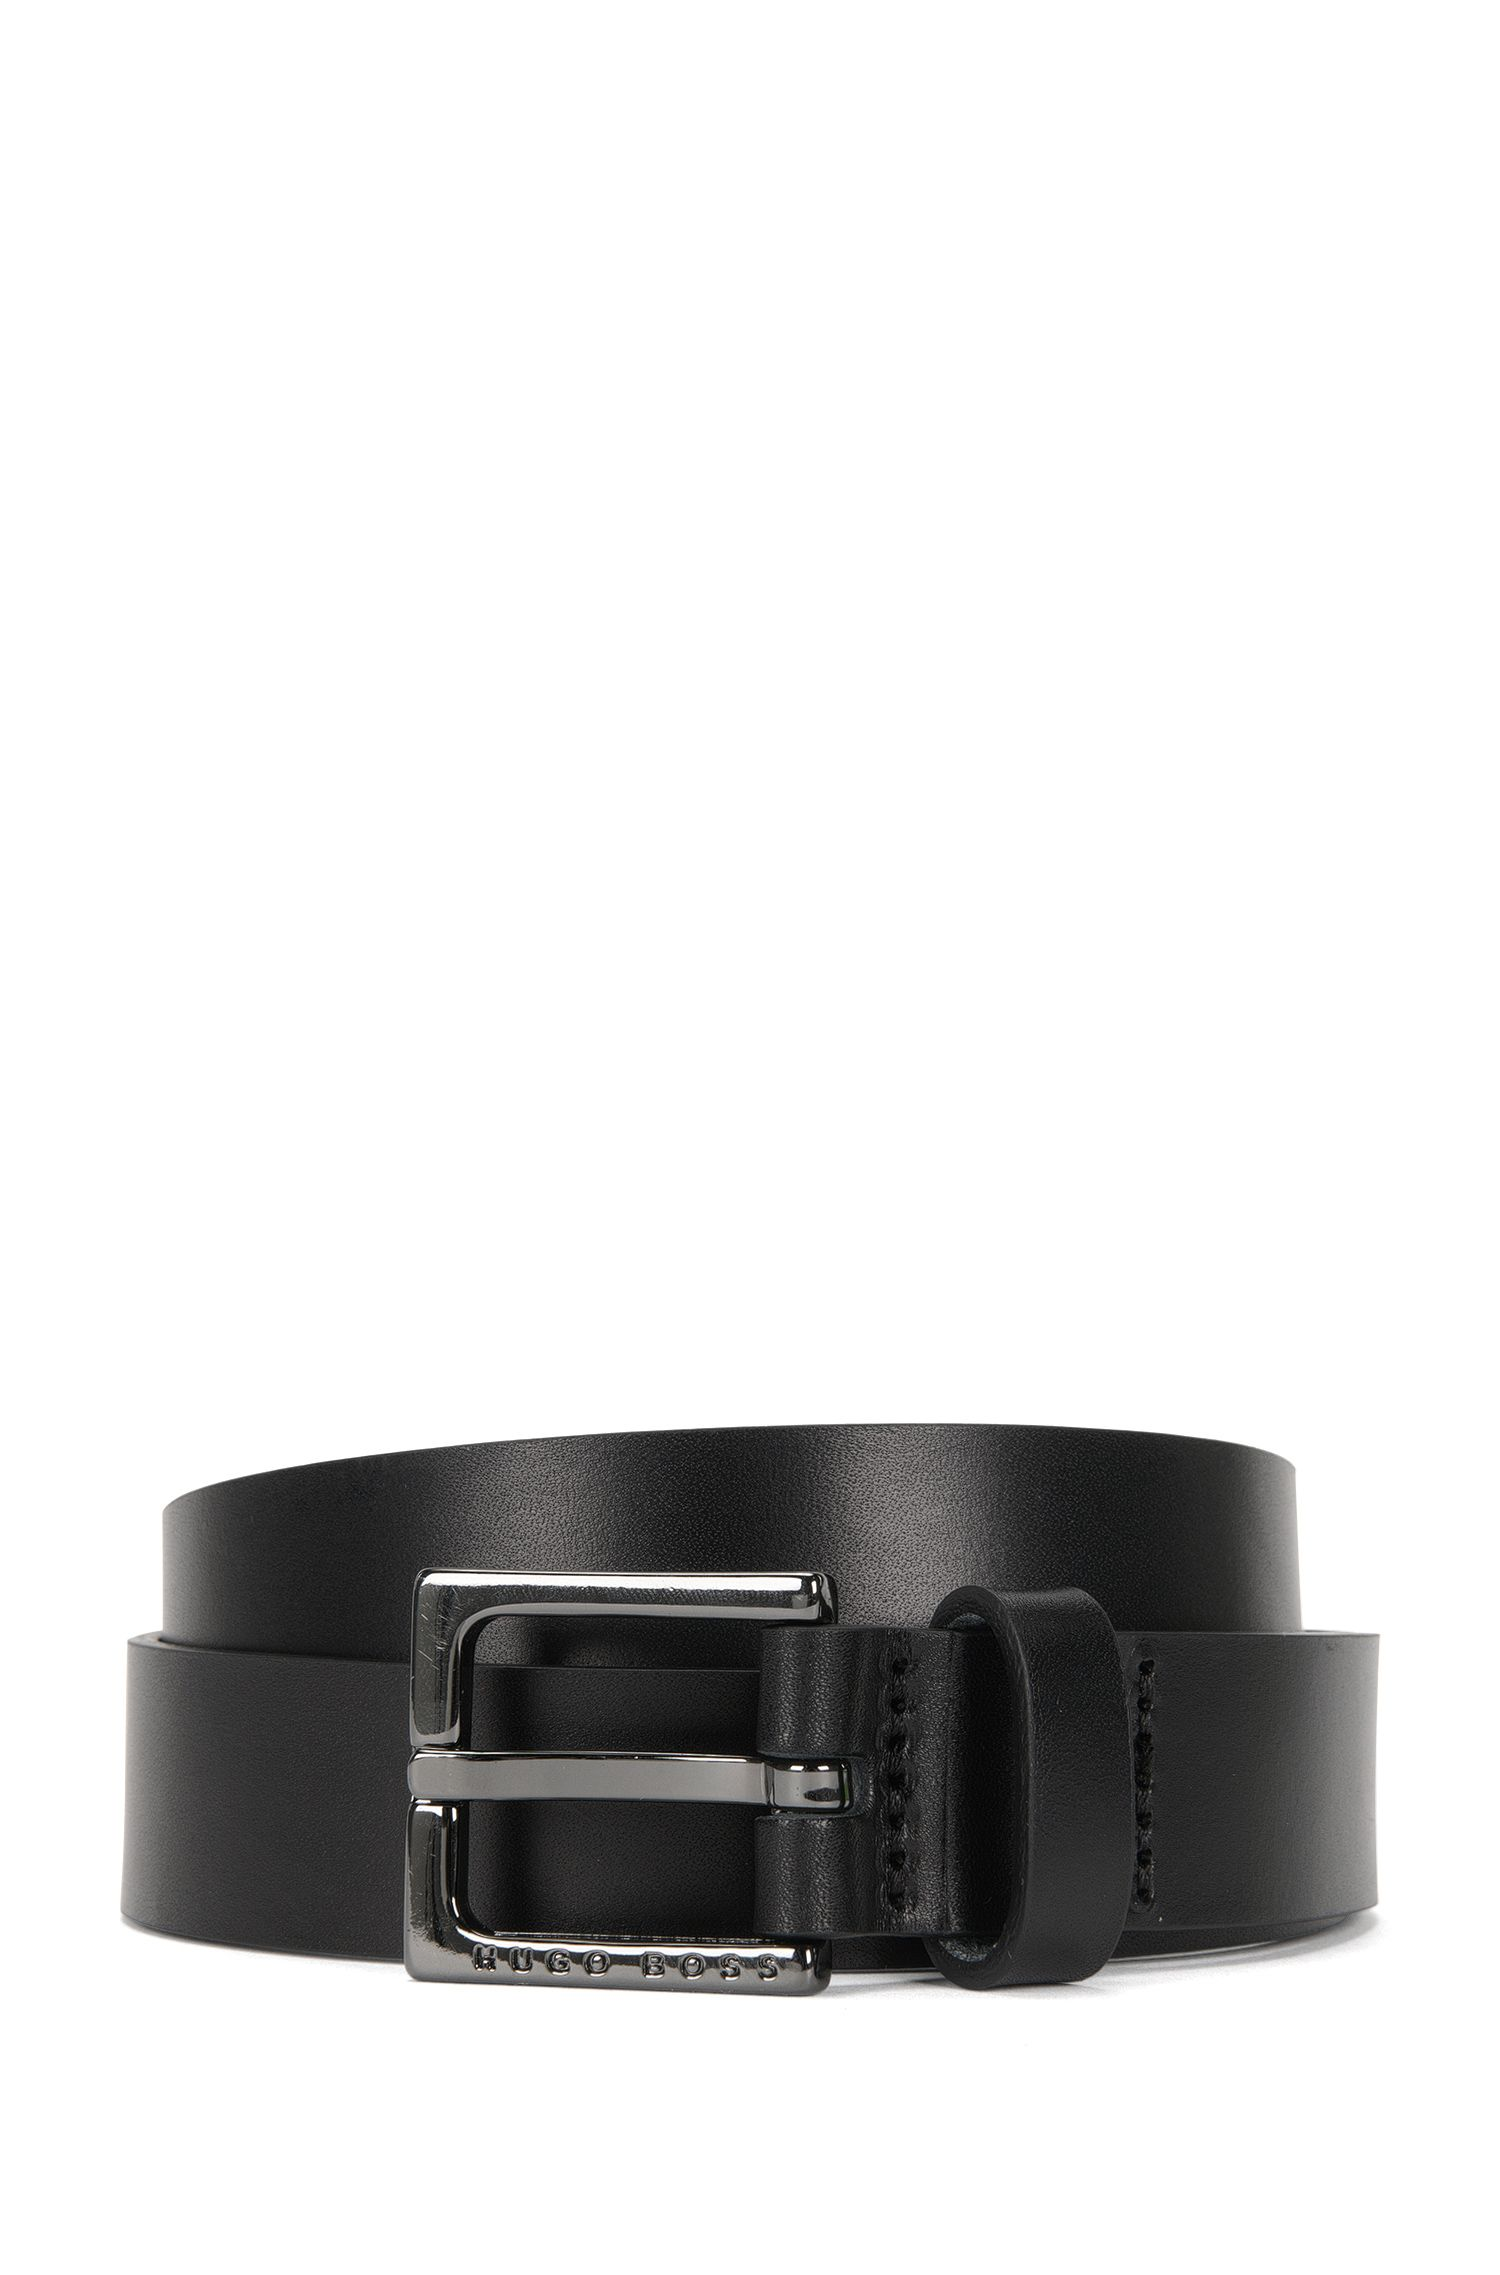 Leather belt with polished gunmetal pin buckle